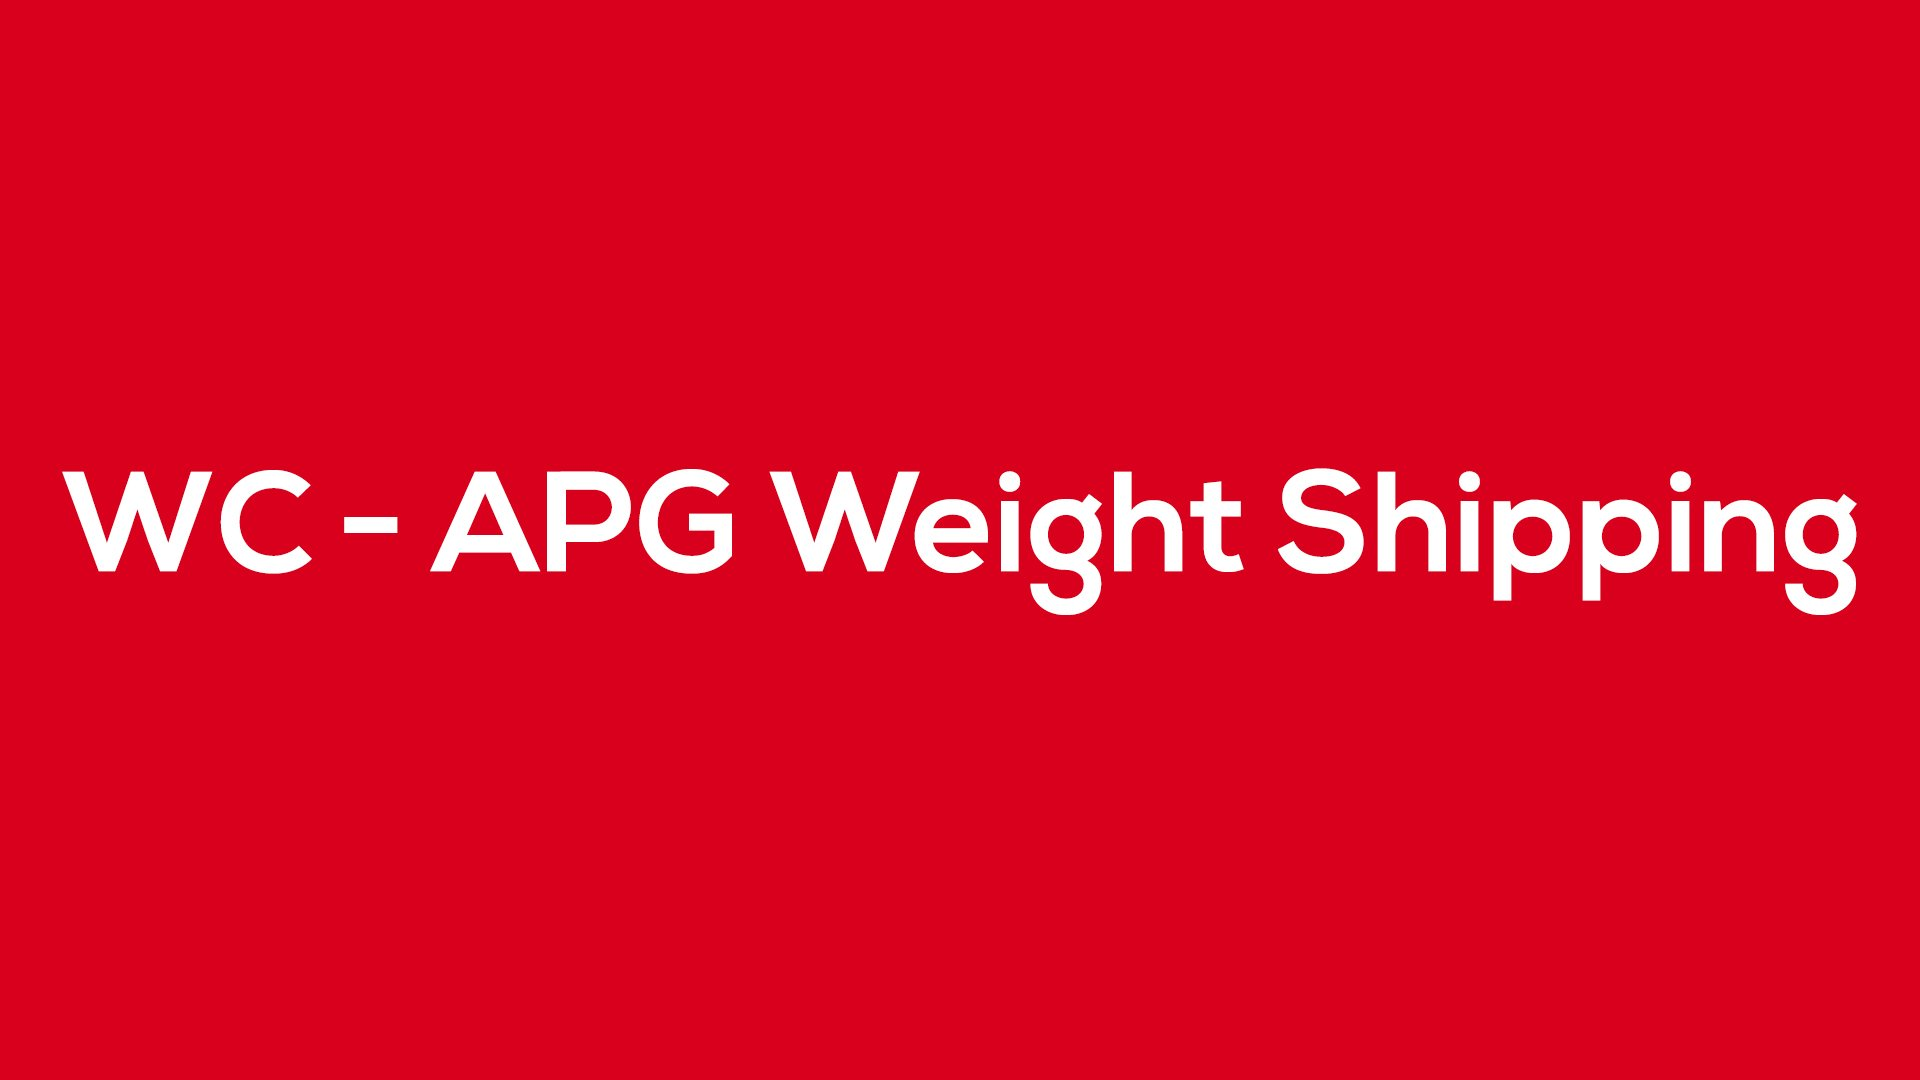 WC - APG Weight Shipping - Blog